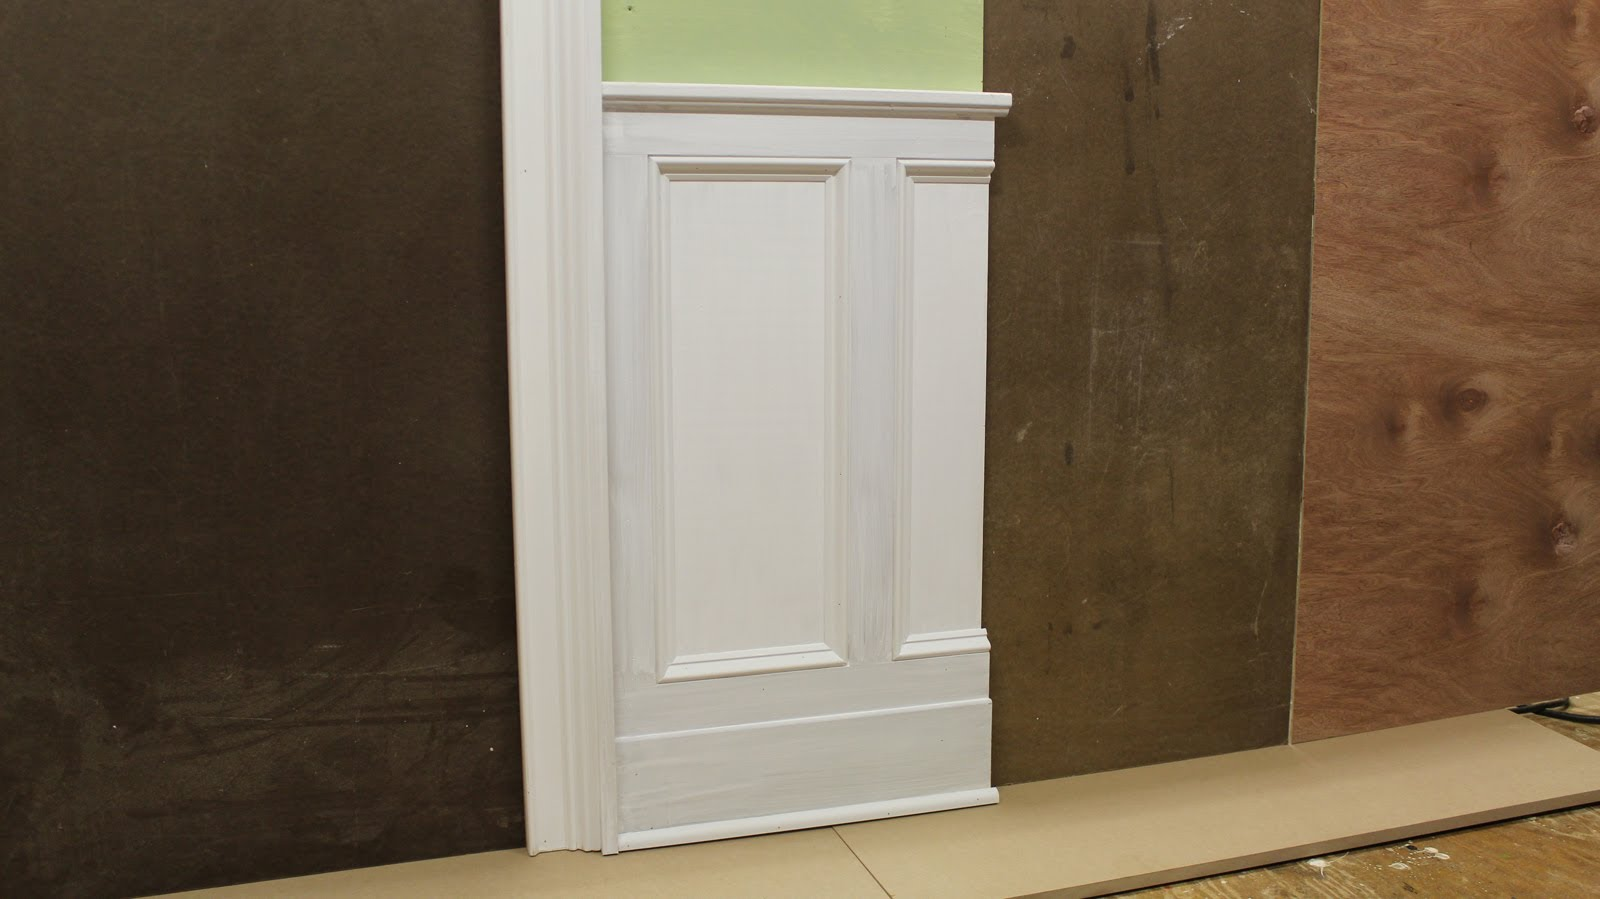 Tips on Designing \u0026 Installing Chair Rail Wainscoting and Panel molding \u2013 Design Plans : wainscoting door - pezcame.com